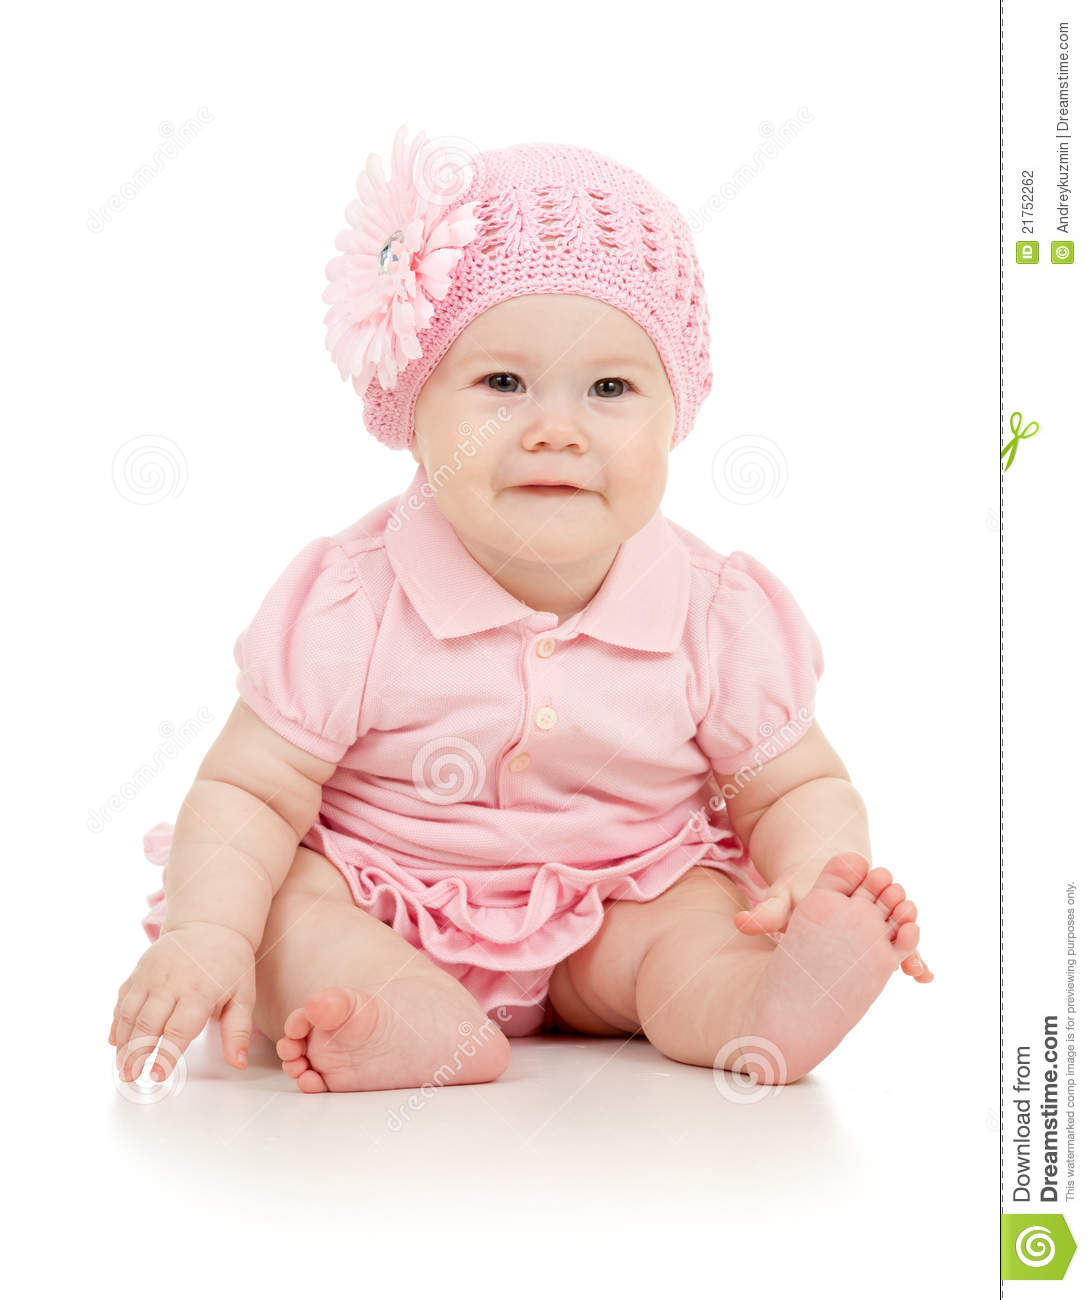 880a2cbdeca6 Little Cute Baby Girl Pink Dress Stock Images - Download 11